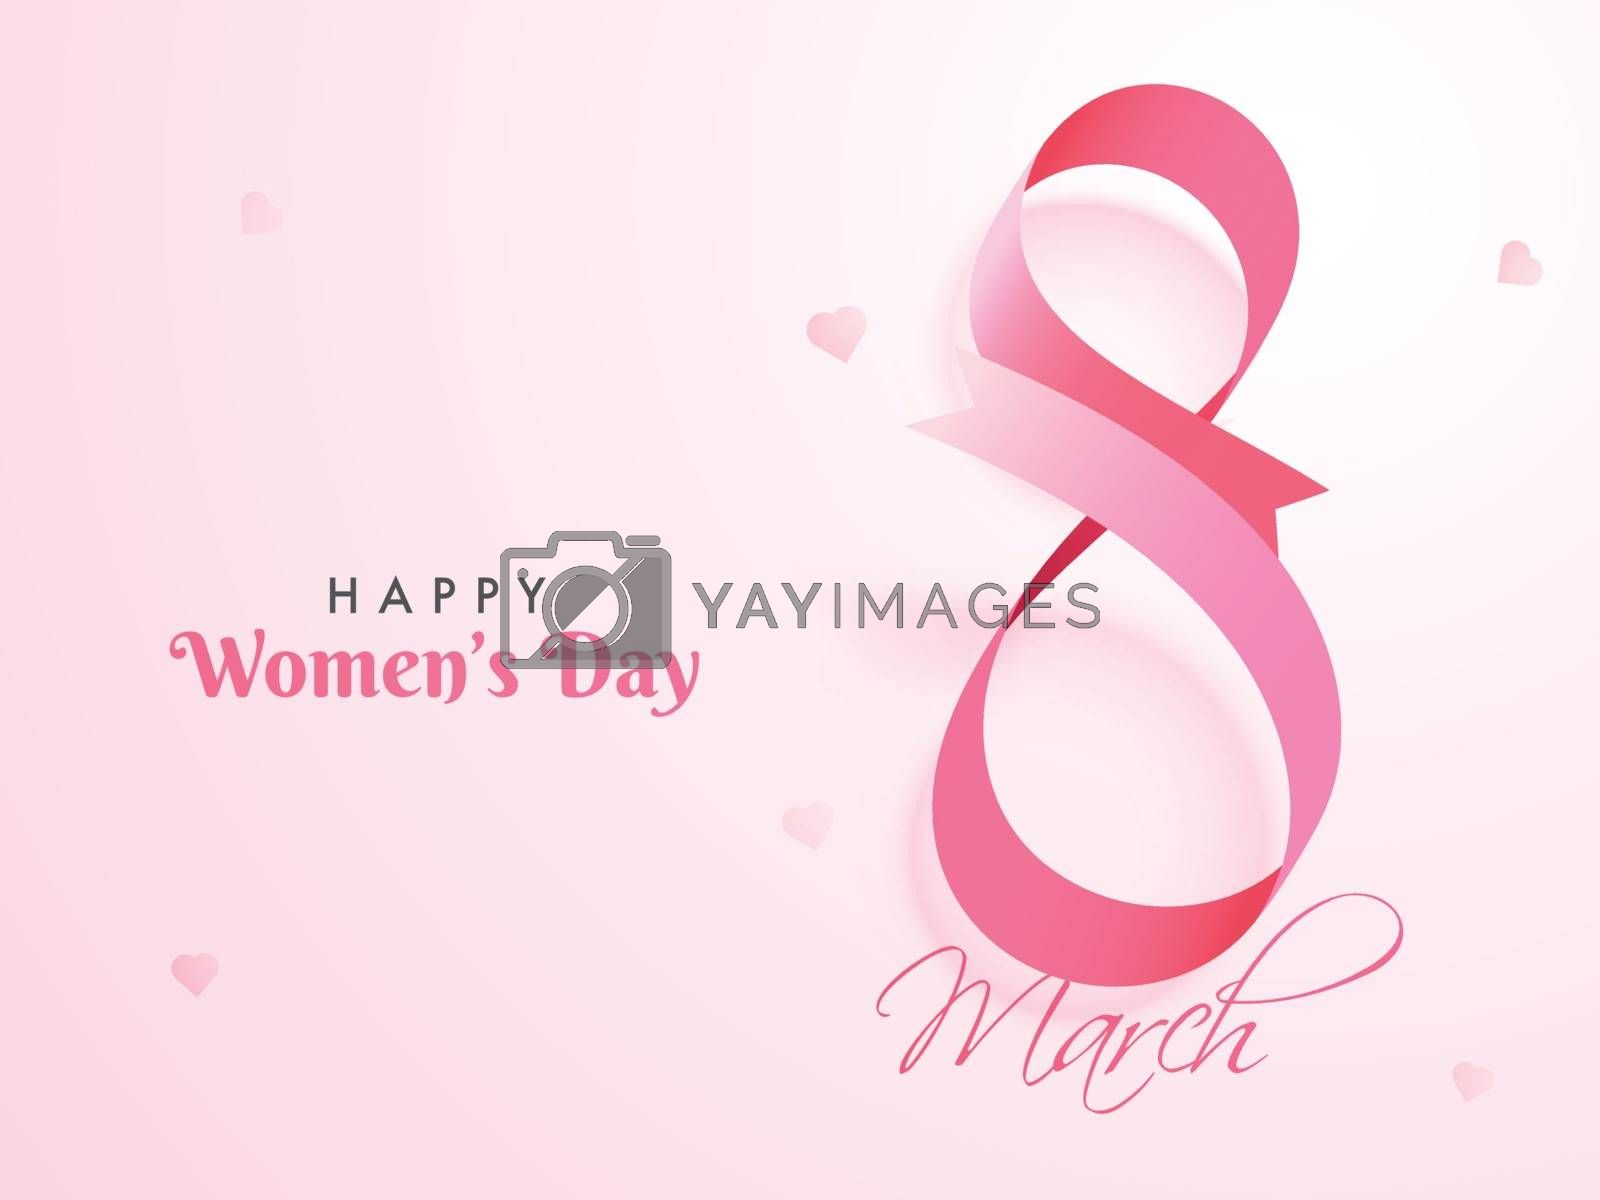 Glossy pink ribbon arranged in text eight on glossy pink background. Happy Women's Day poster greeting card design.